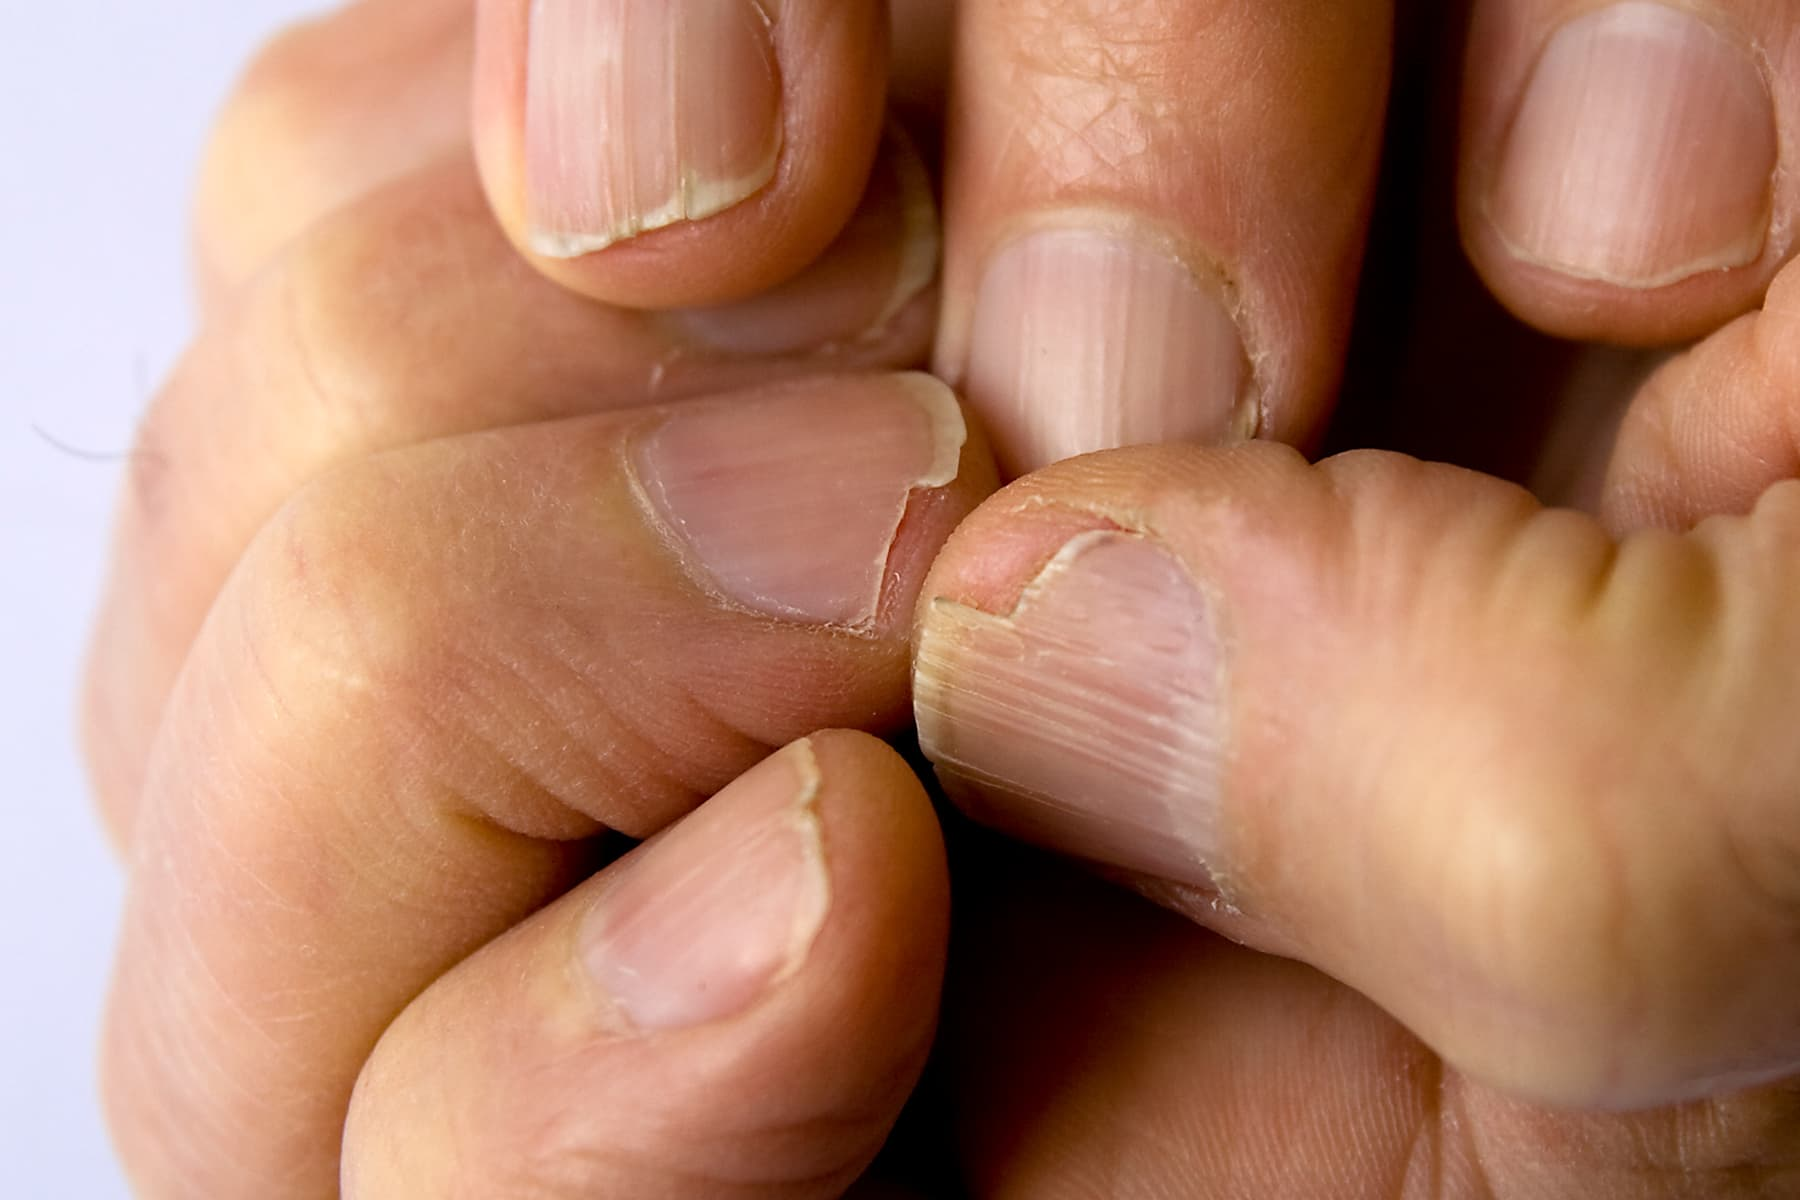 Pictures of What Causes Brittle Nails and How to Care for Them